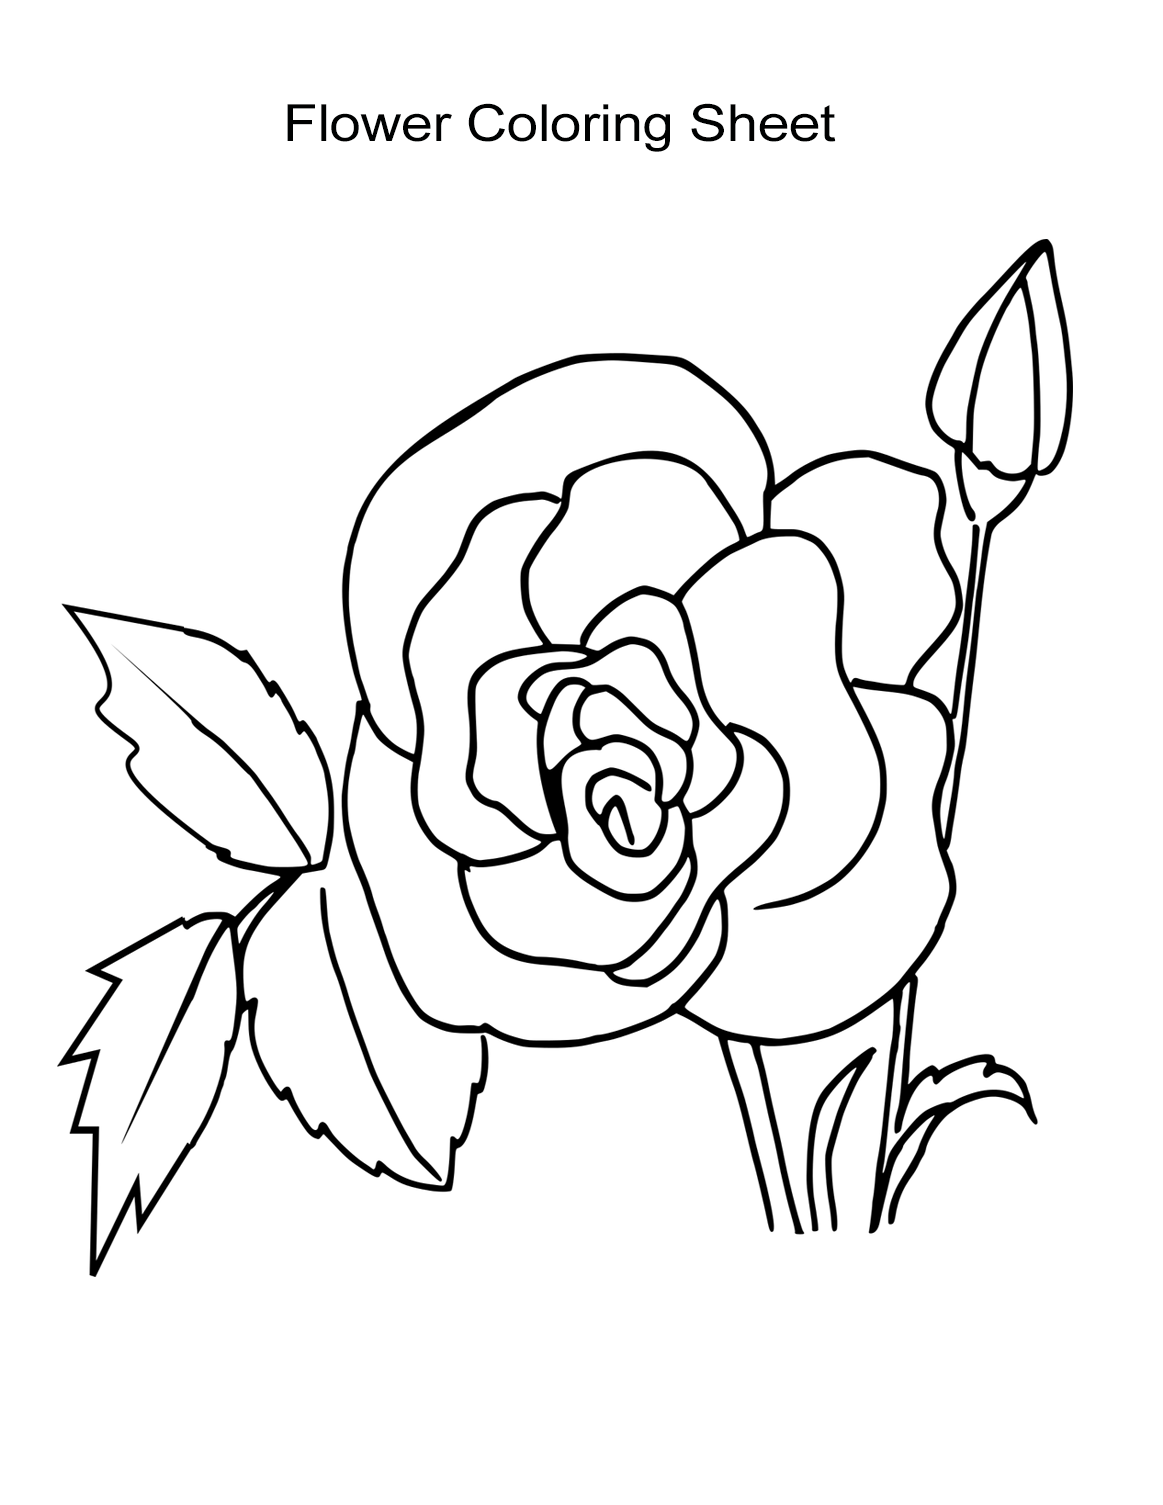 colouring page of flowers flowers free to color for kids flowers kids coloring pages flowers page colouring of